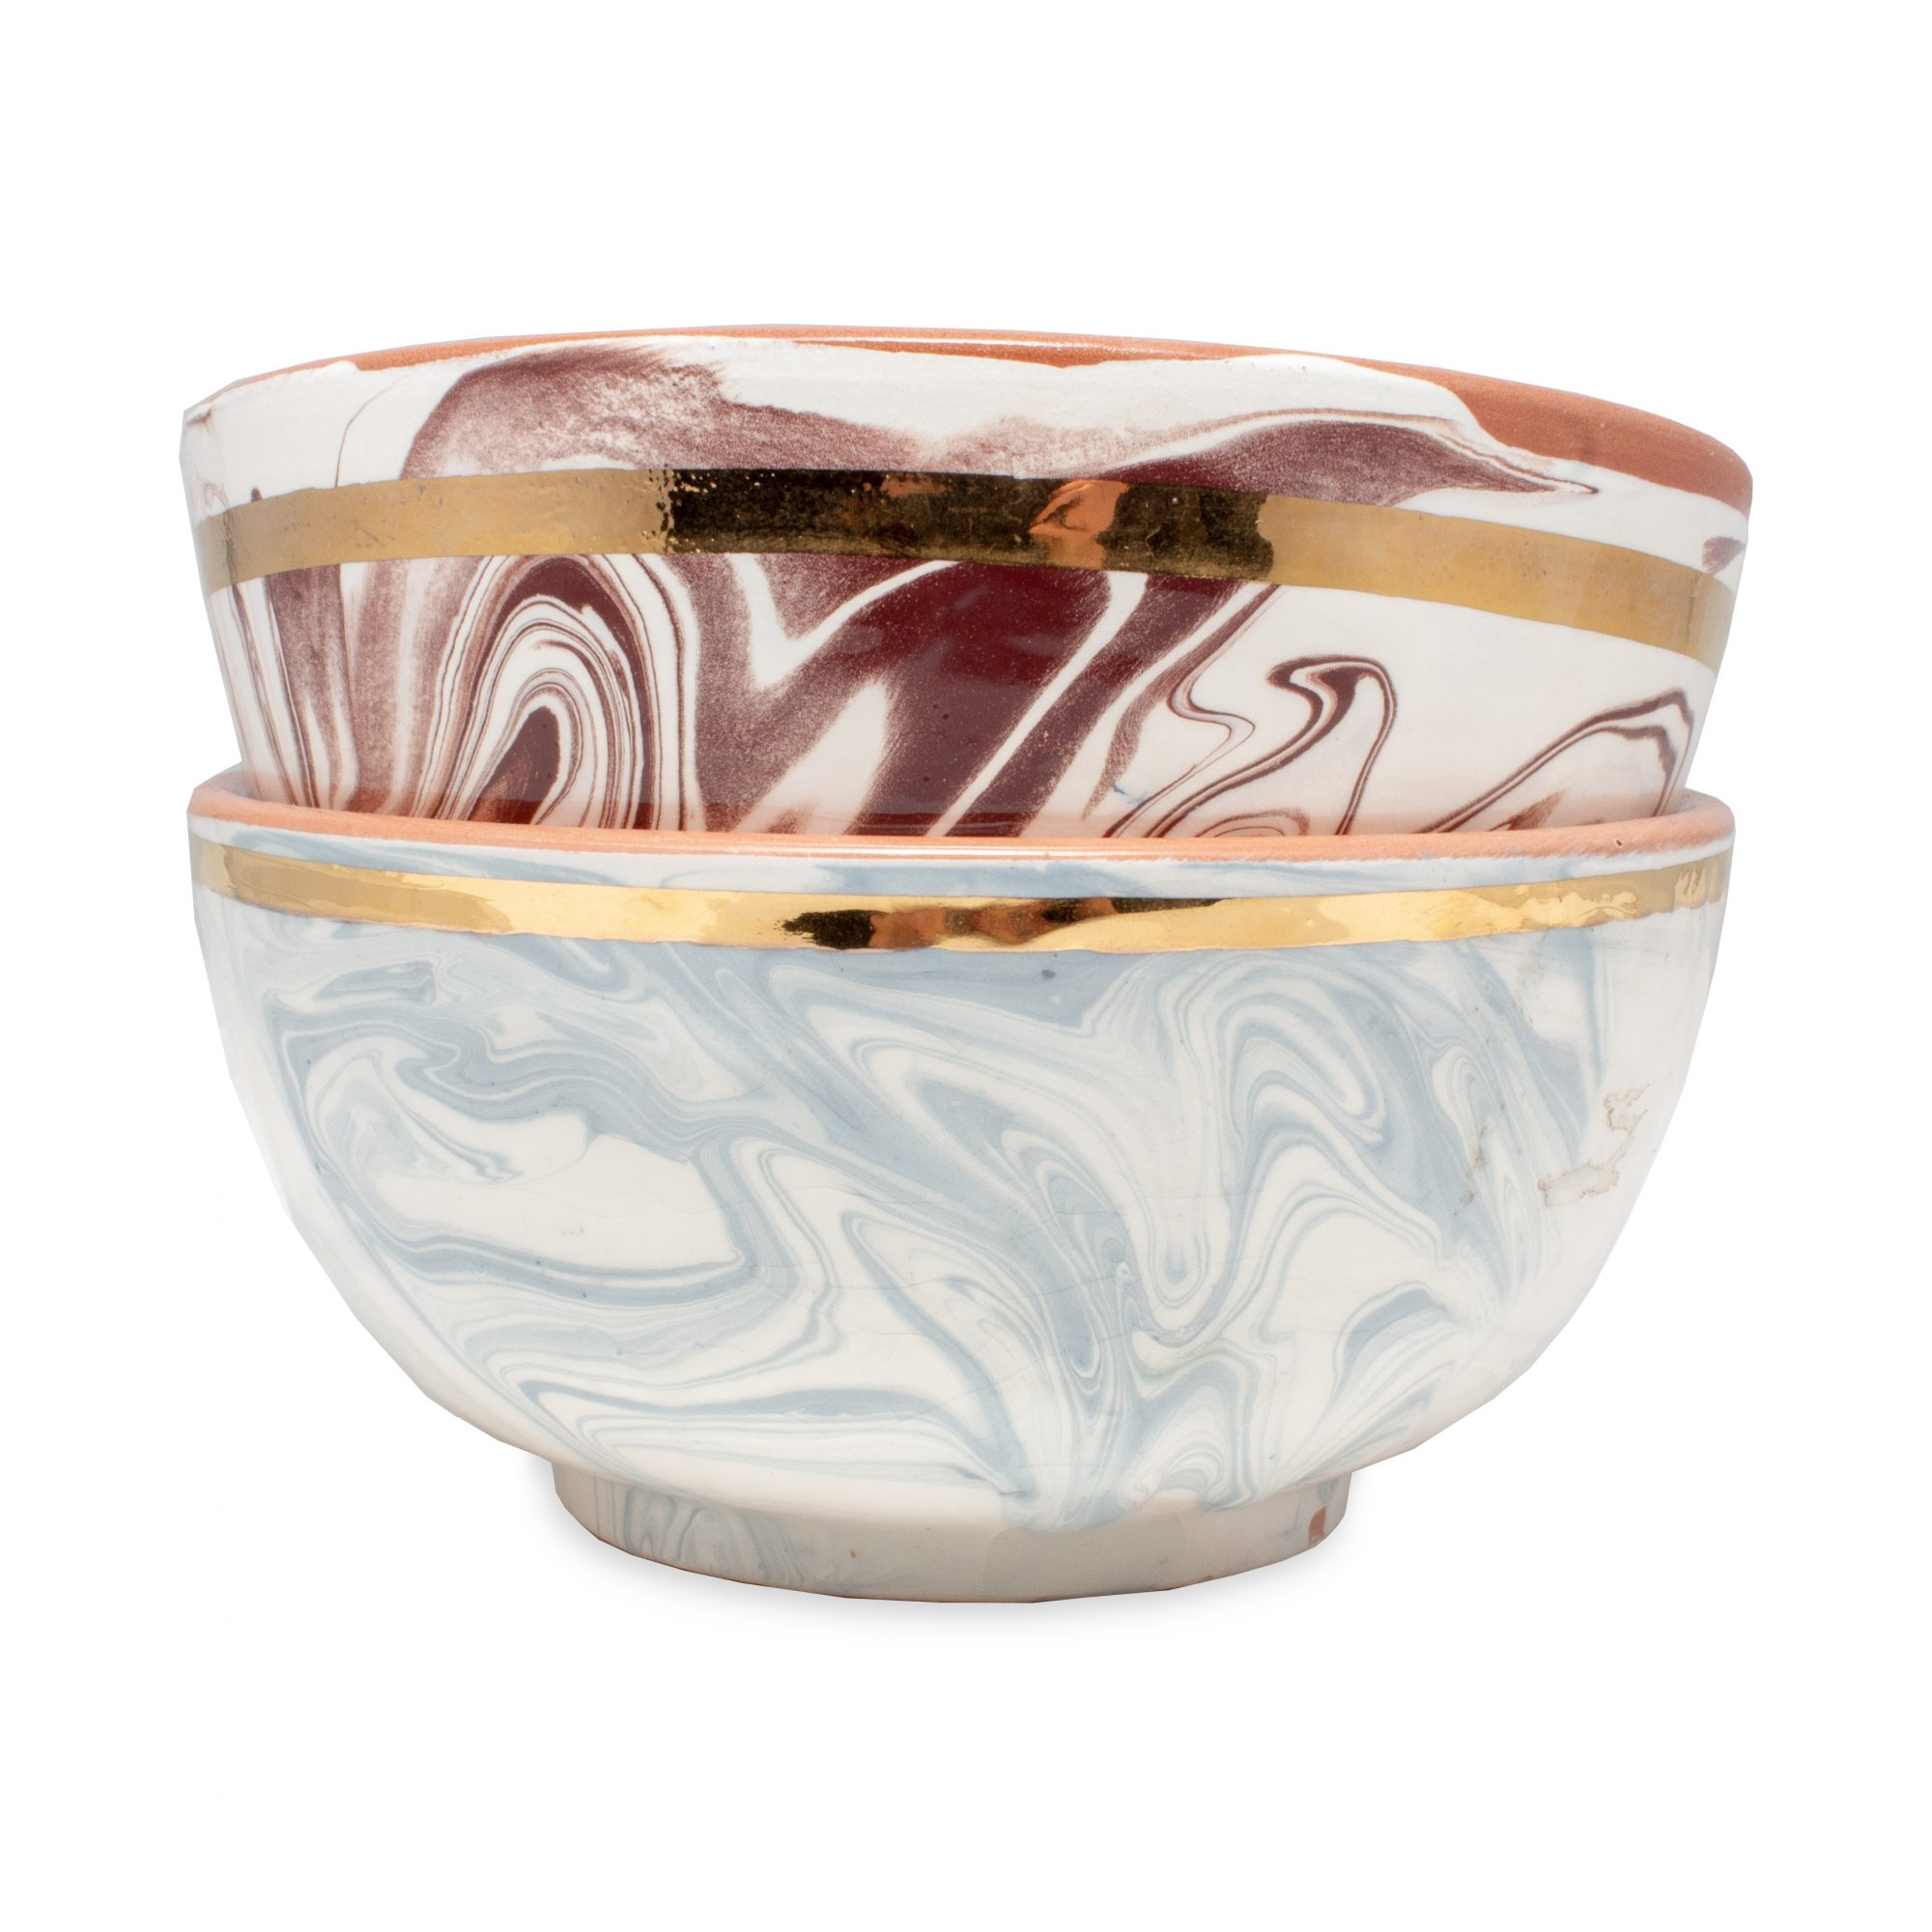 Laurier Blanc Handmade Marble Glazed Moroccan Bowls, Large, $69